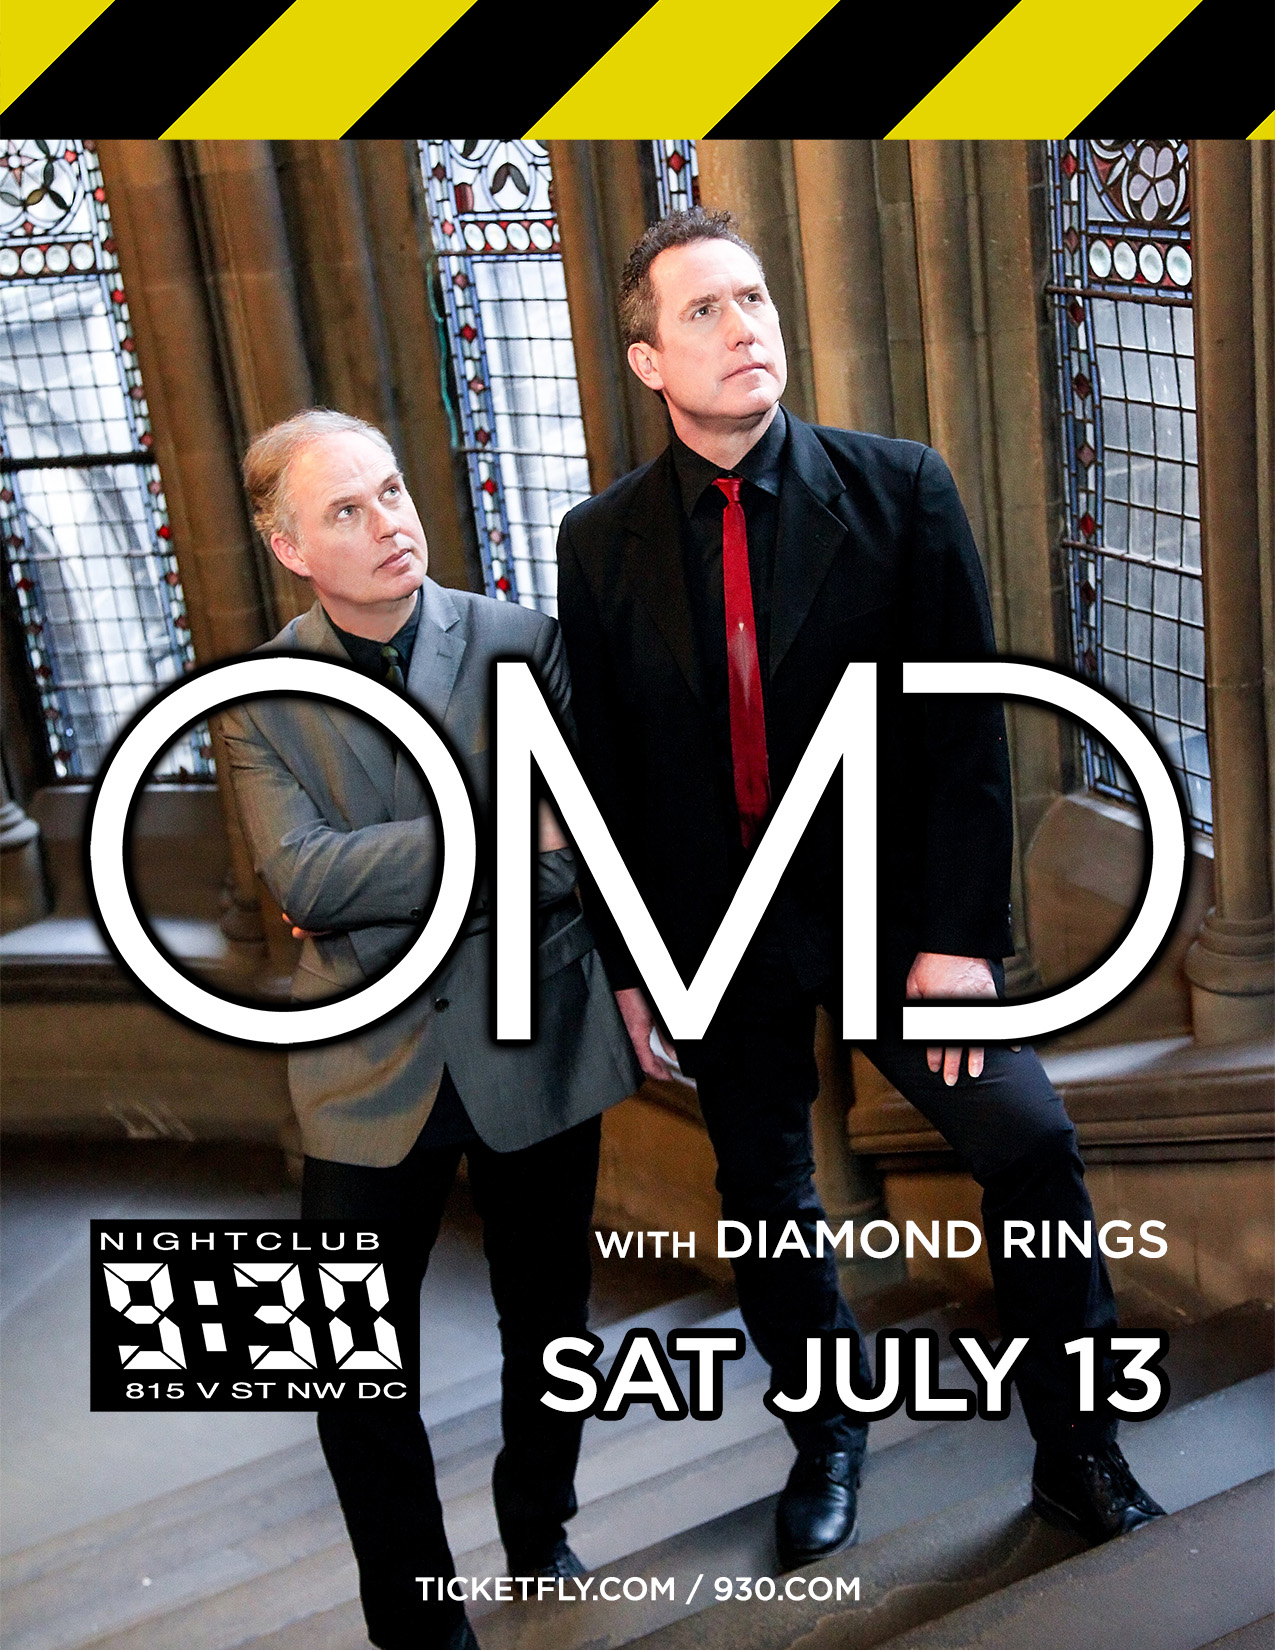 OMD with Diamond Rings Giveaway!